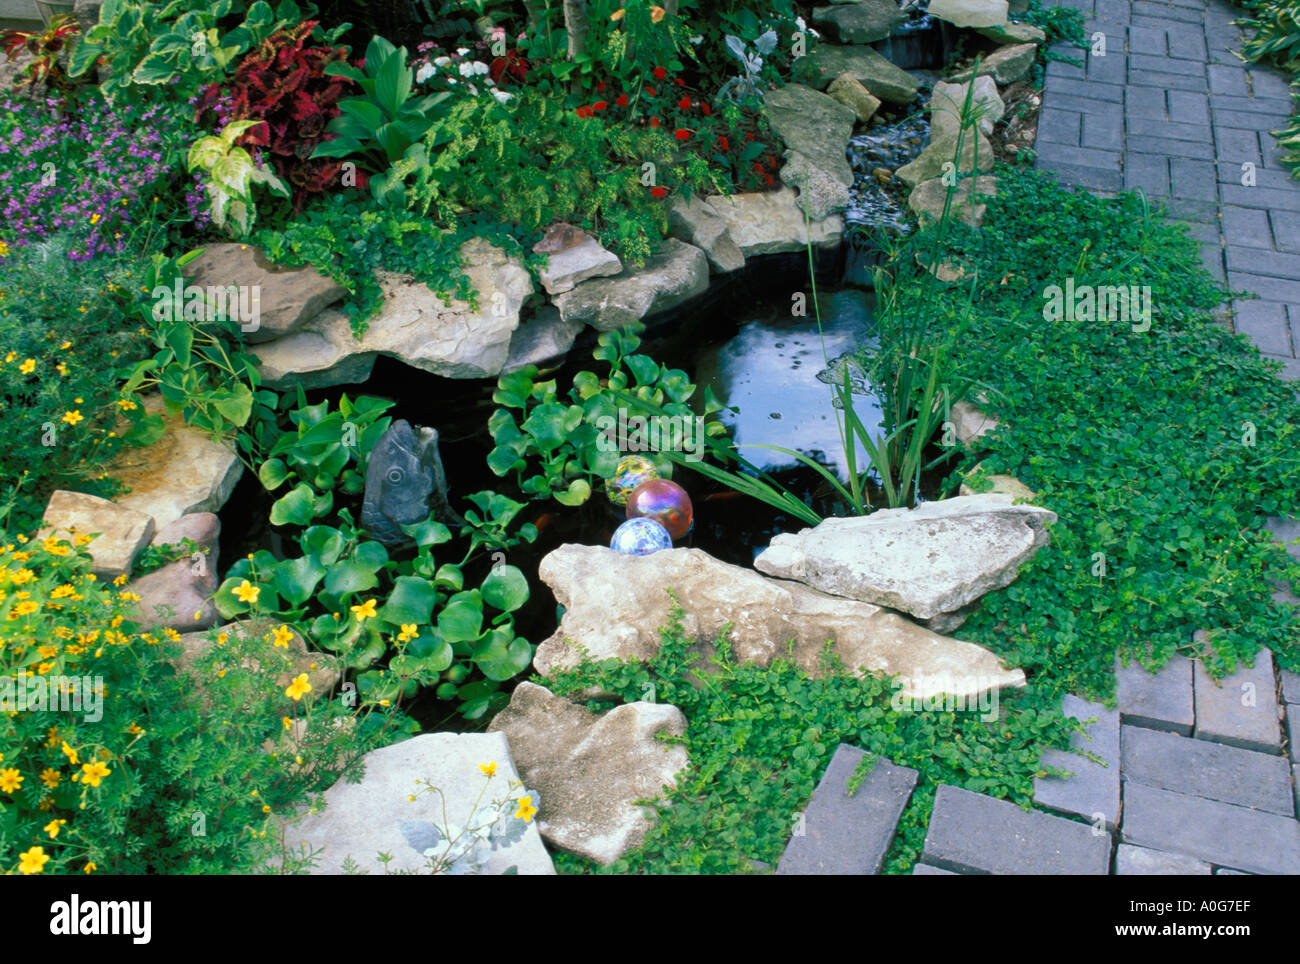 Small decorative fish pool with fountain waterfall in landscaped garden with brick paths and patio,  Midwest  USA Stock Photo